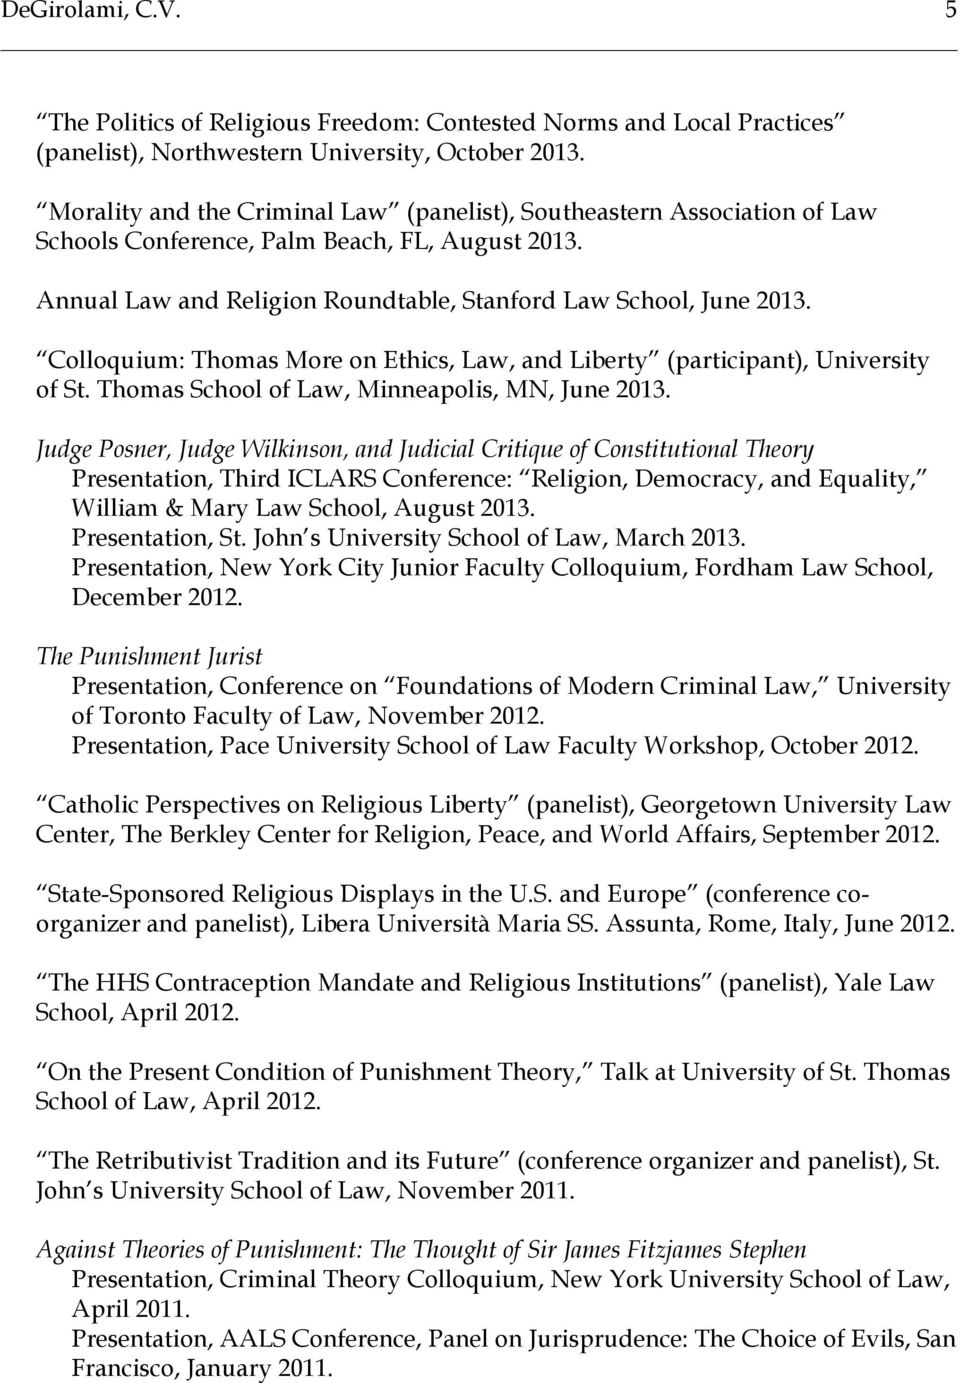 Colloquium: Thomas More on Ethics, Law, and Liberty (participant), University of St. Thomas School of Law, Minneapolis, MN, June 2013.